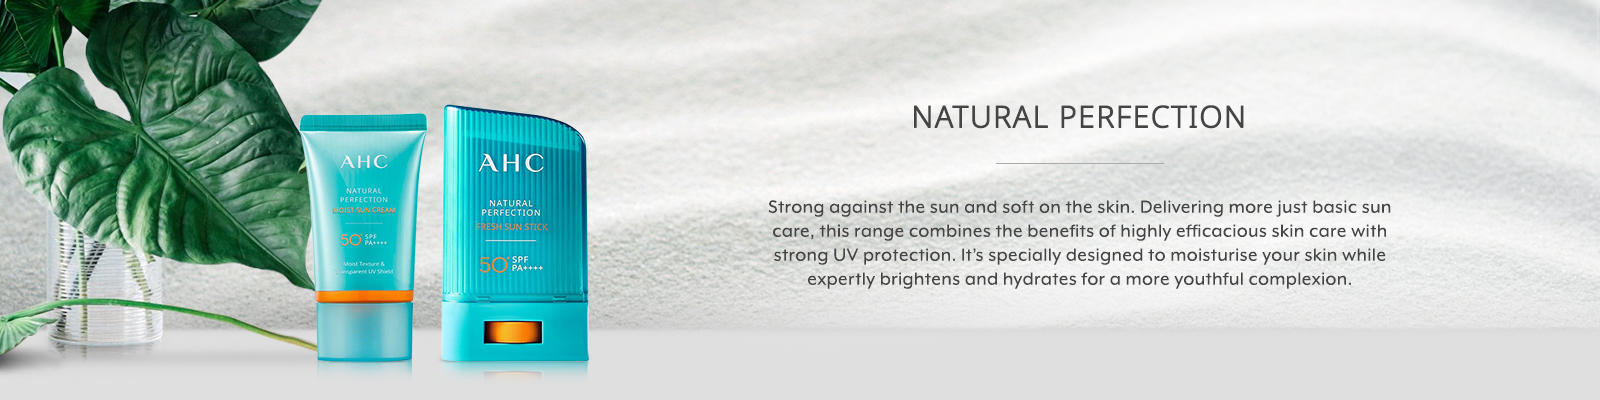 AHC Natural Perfection Sun Care Banner